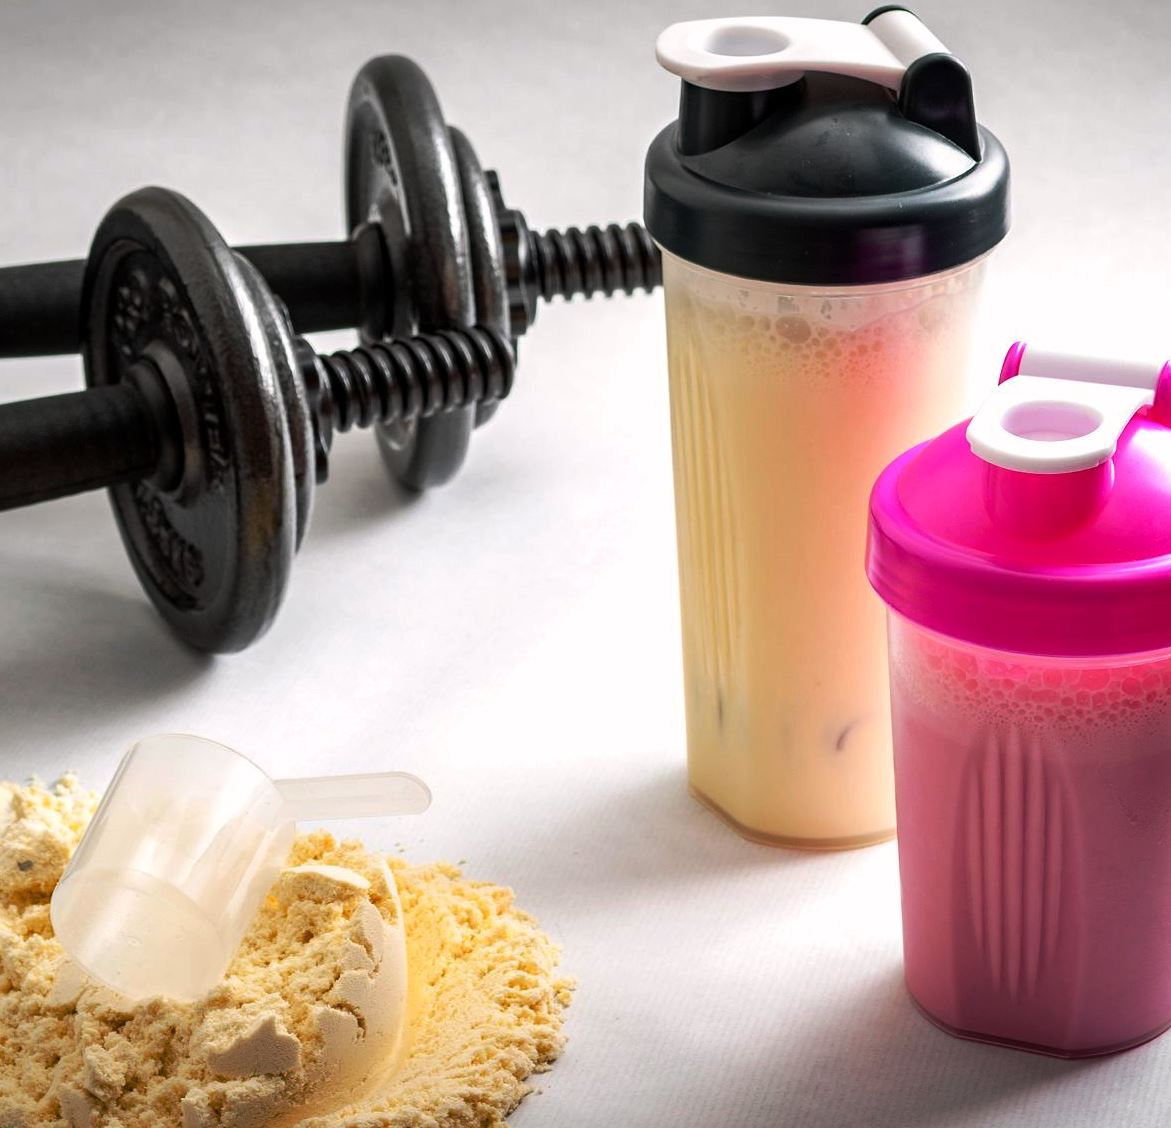 Phd diet whey review UK recipes for women – Nutrition guide